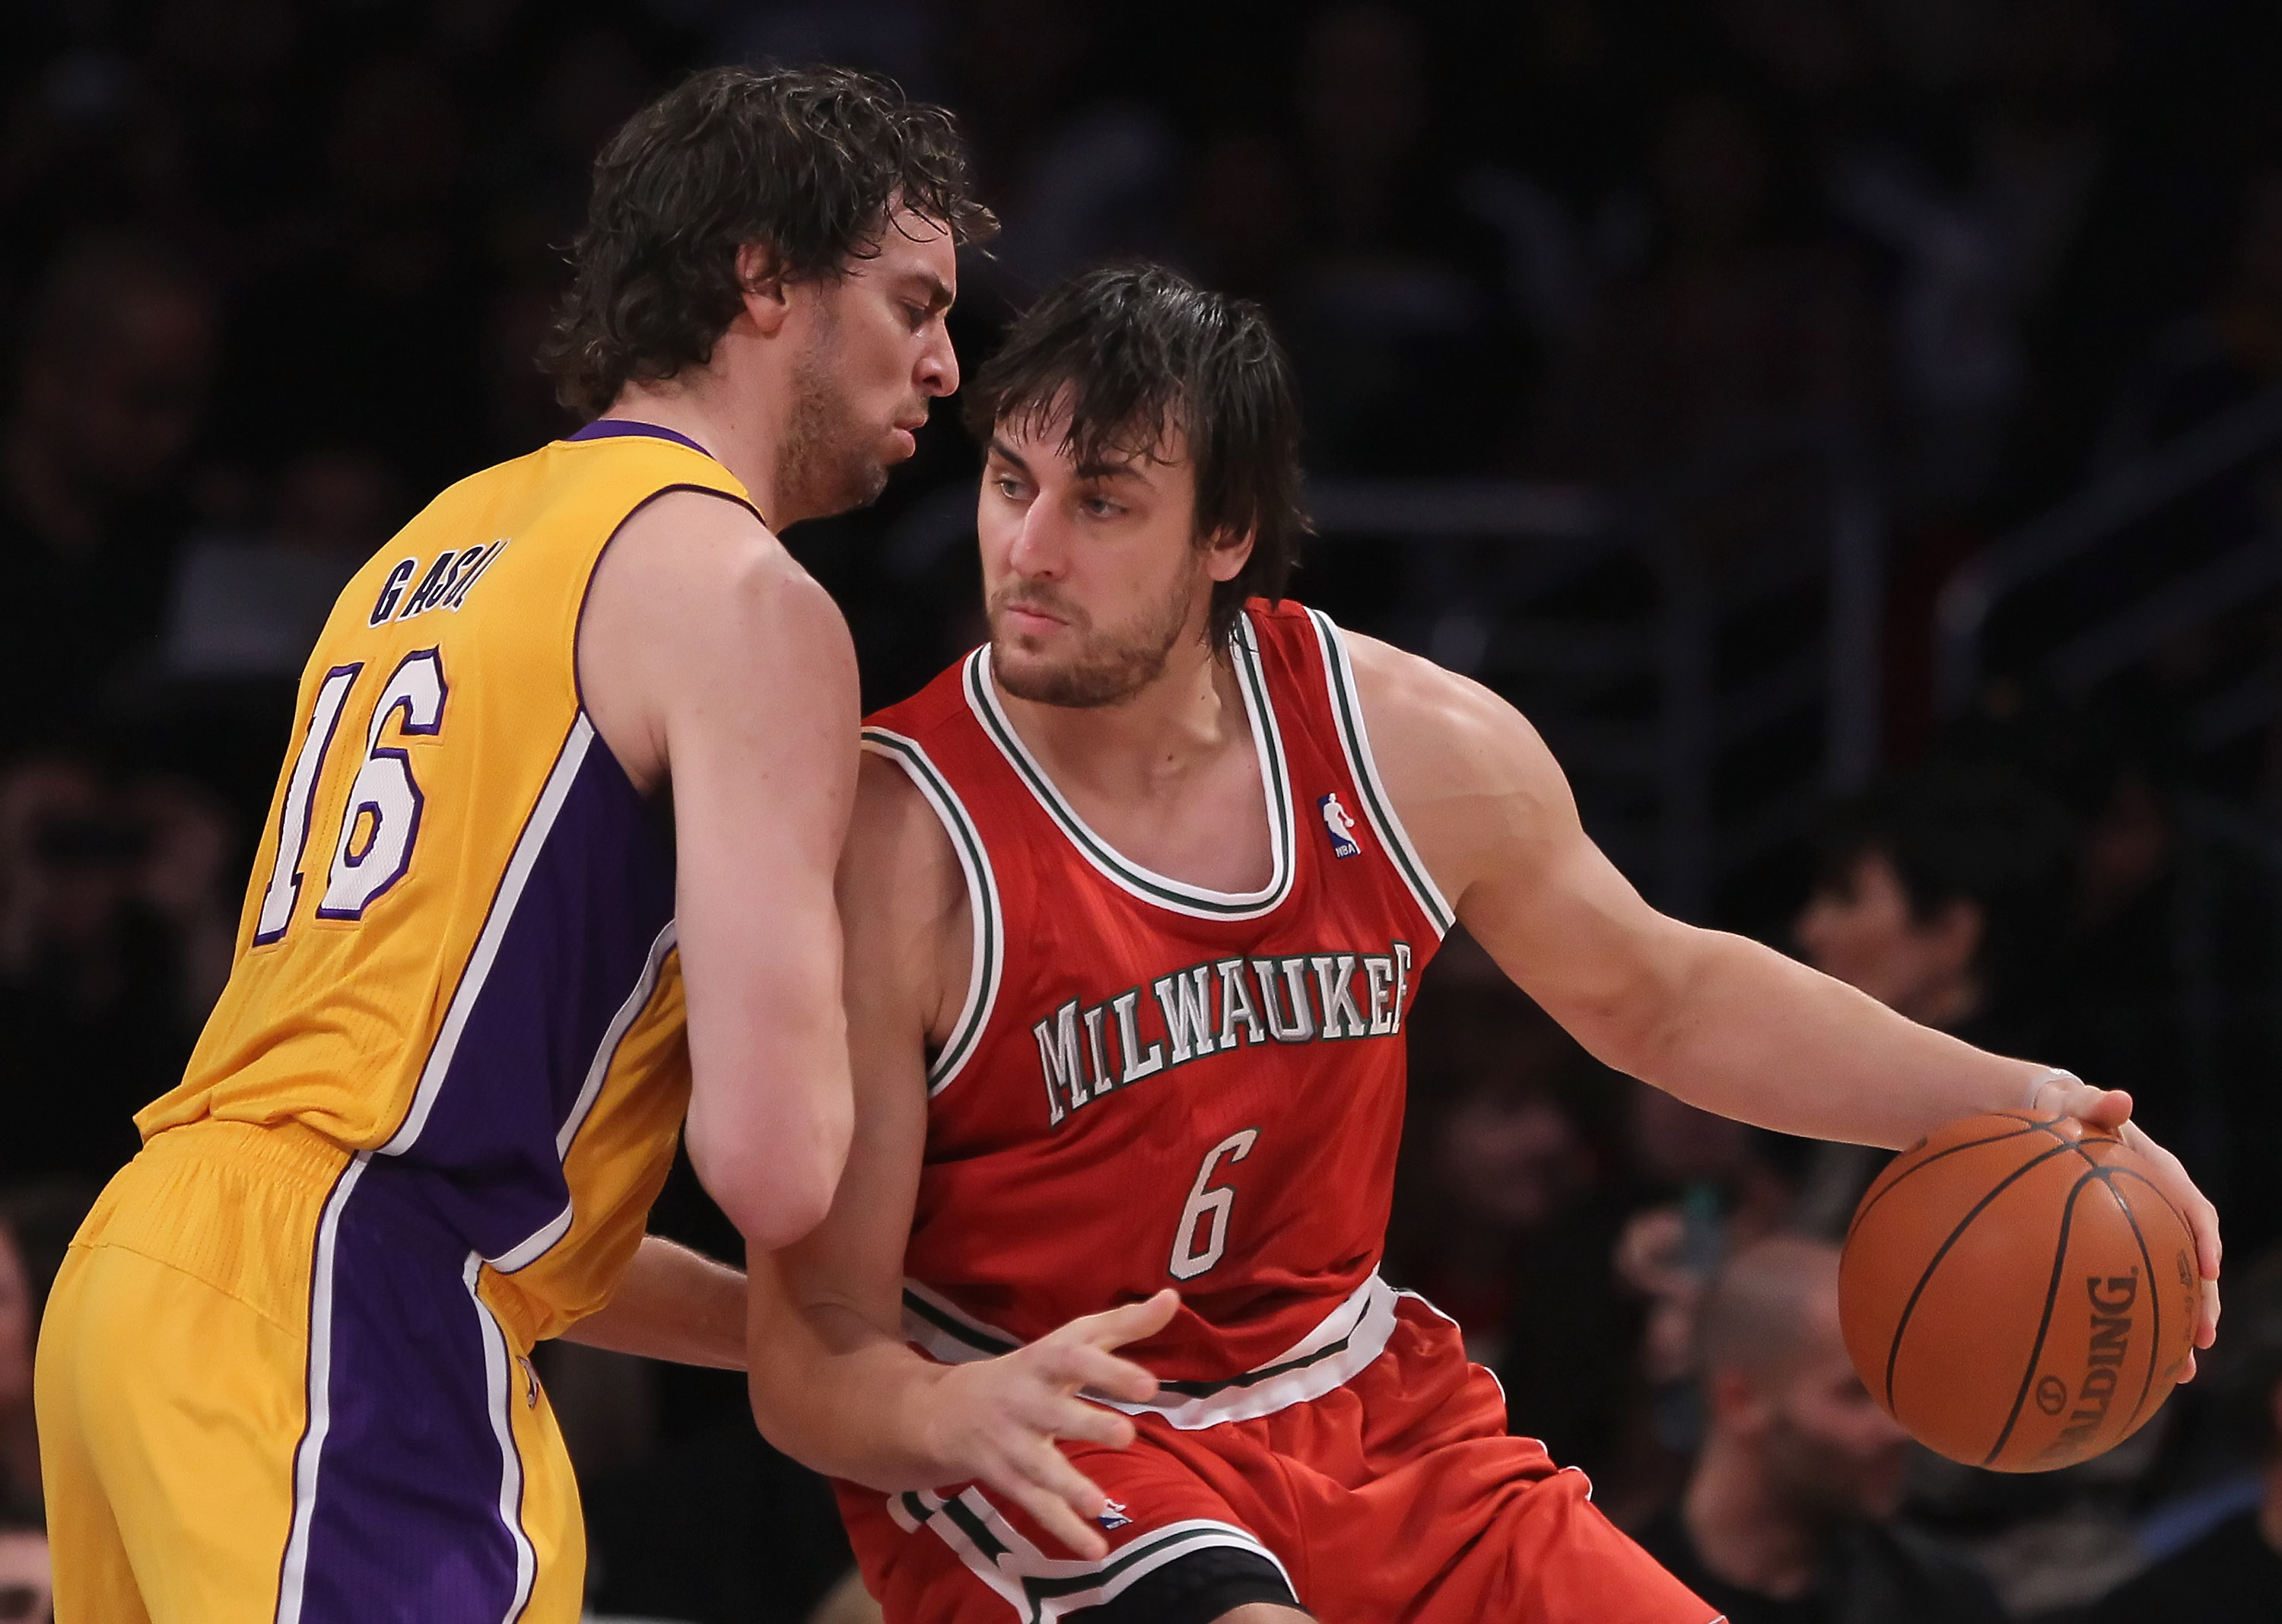 LOS ANGELES, CA - DECEMBER 21:  Pau Gasol #16 of the Los Angeles Lakers defends Andrew Bogut #6 of the Milwaukee Bucks during the first half at Staples Center on December 21, 2010 in Los Angeles, California. The Bucks defeated the Lakers 98-79. NOTE TO US